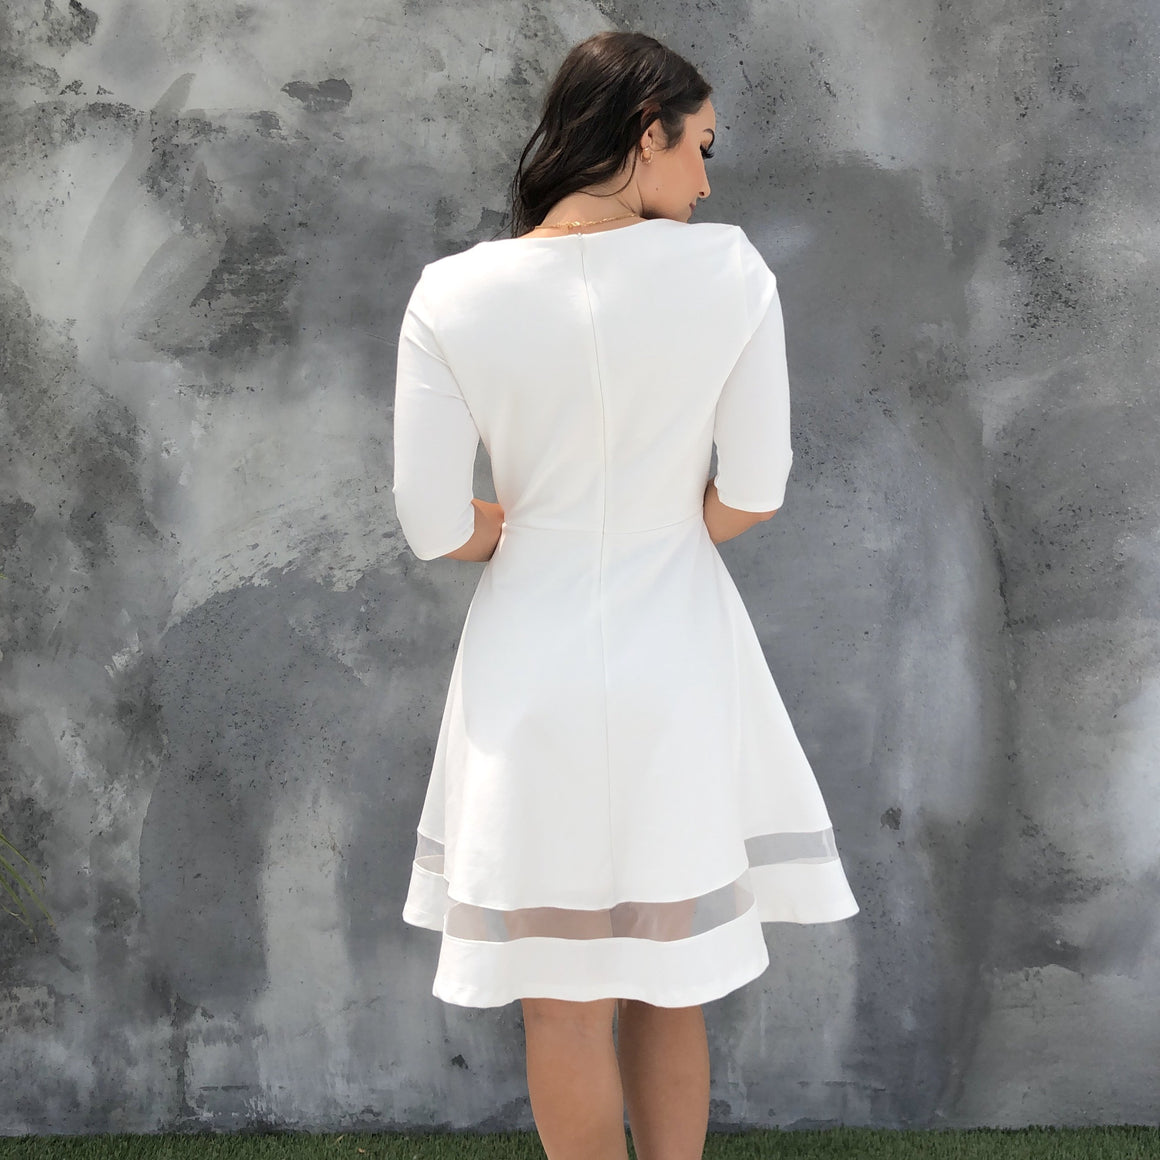 Dolce Amor White Skater Dress - Dainty Hooligan